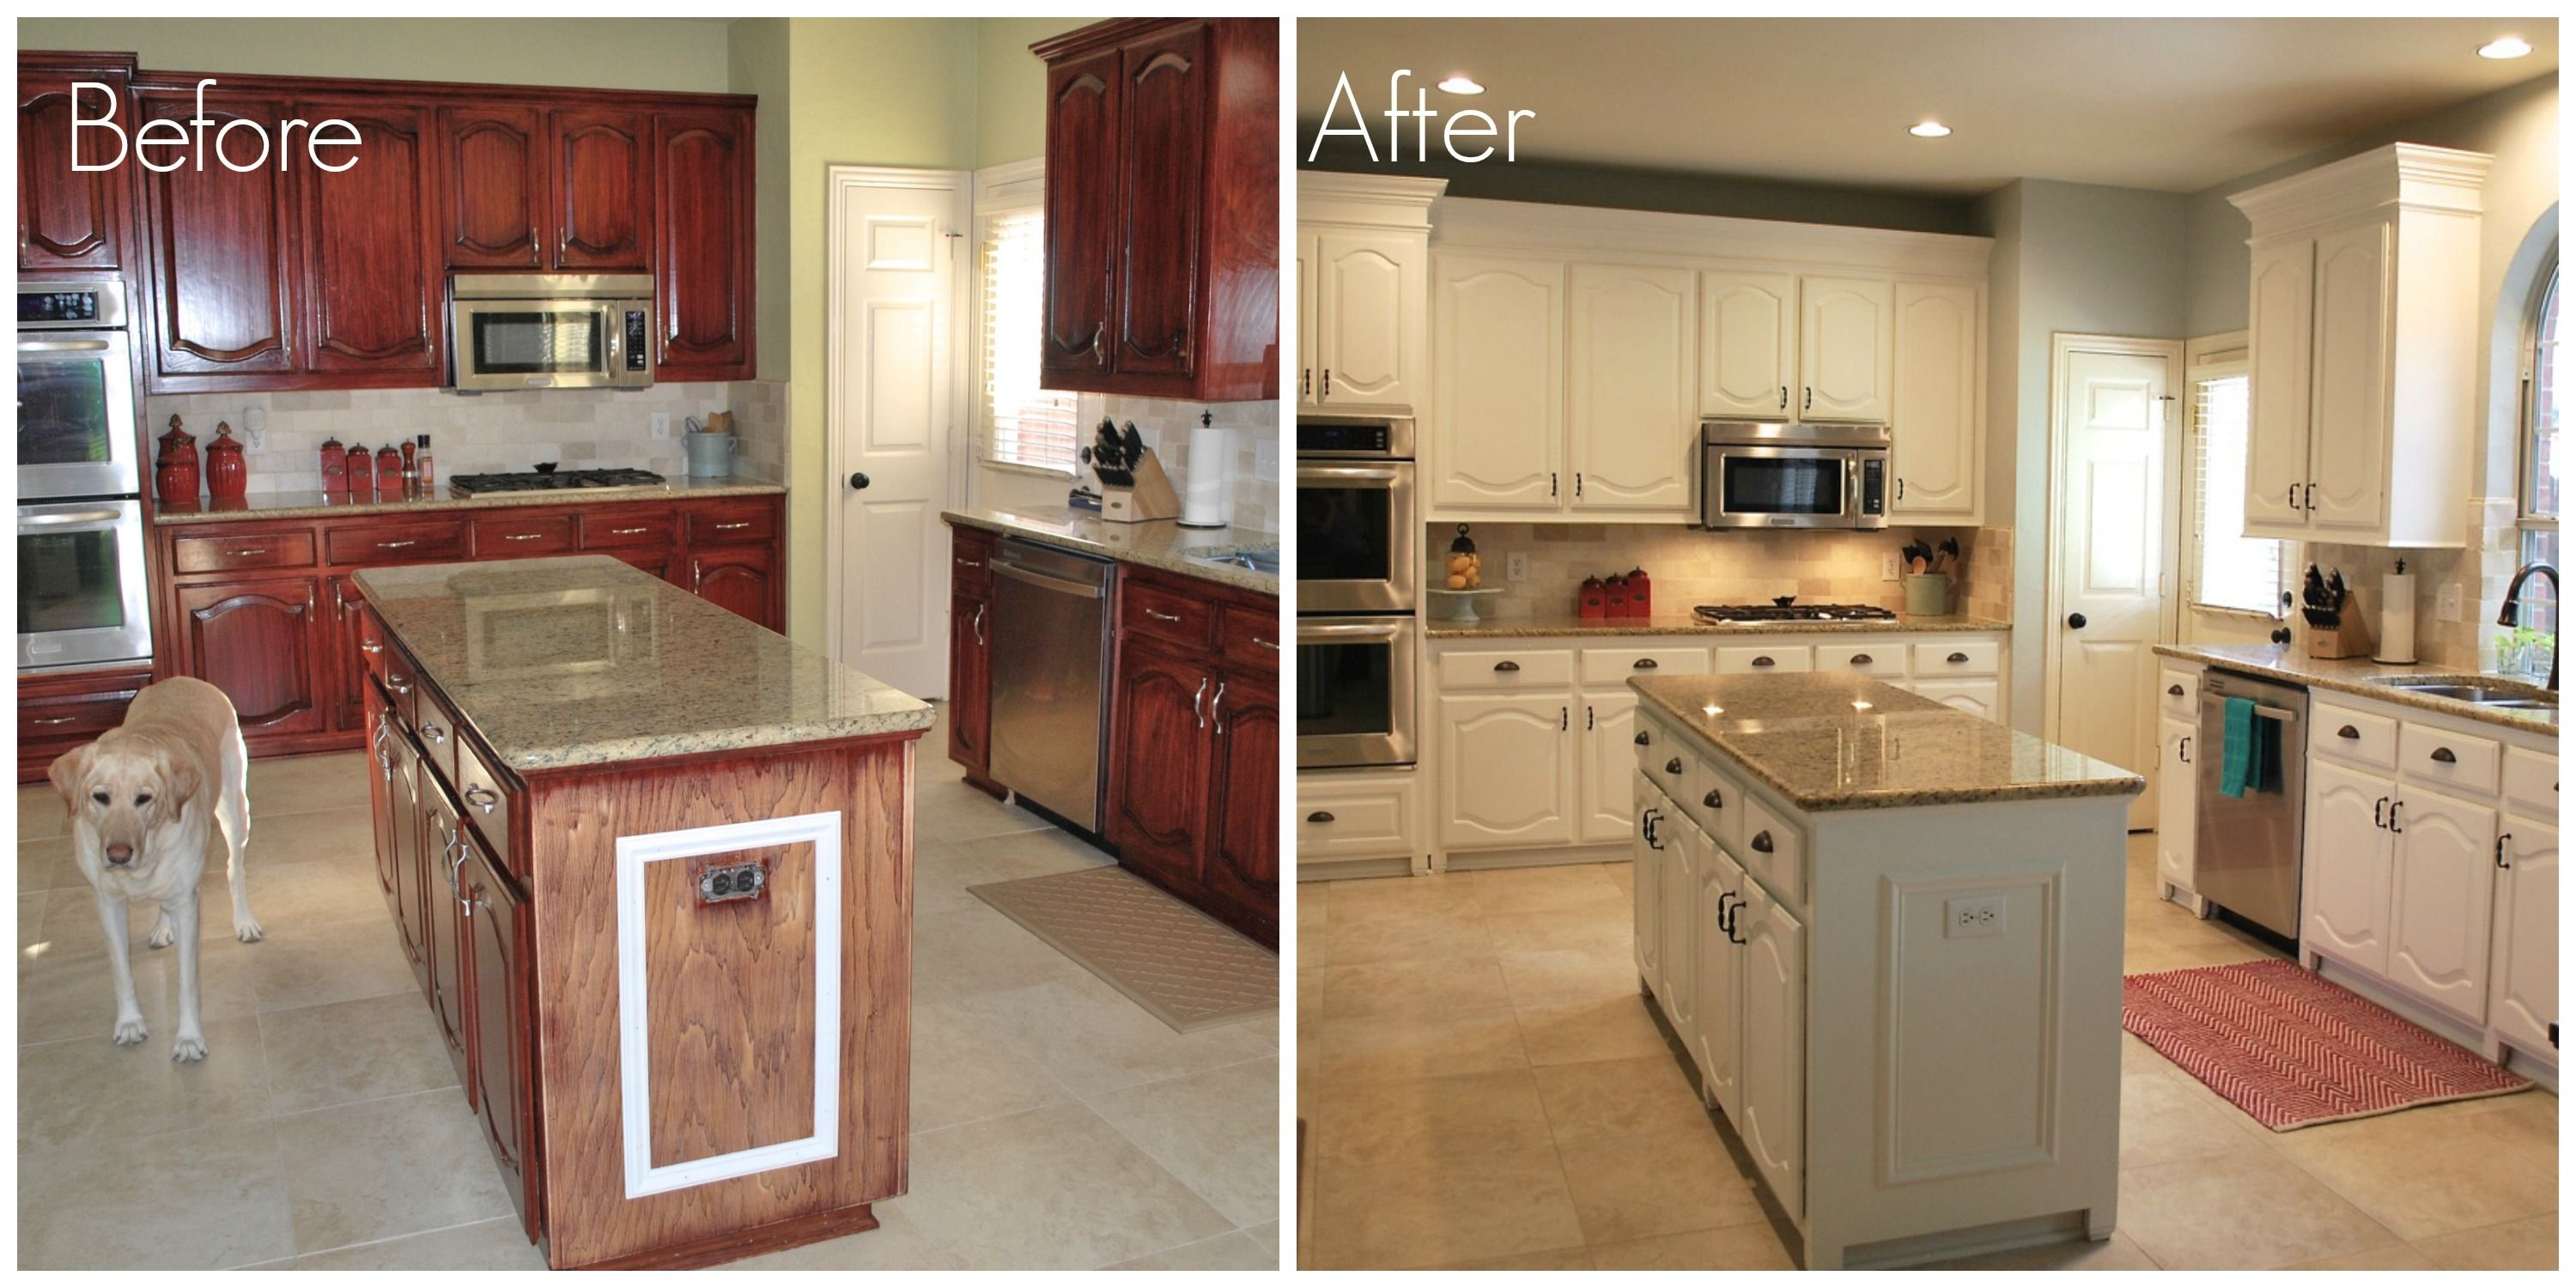 Before after kitchen remodel pinterest painting for How can i update my kitchen cabinets on a budget